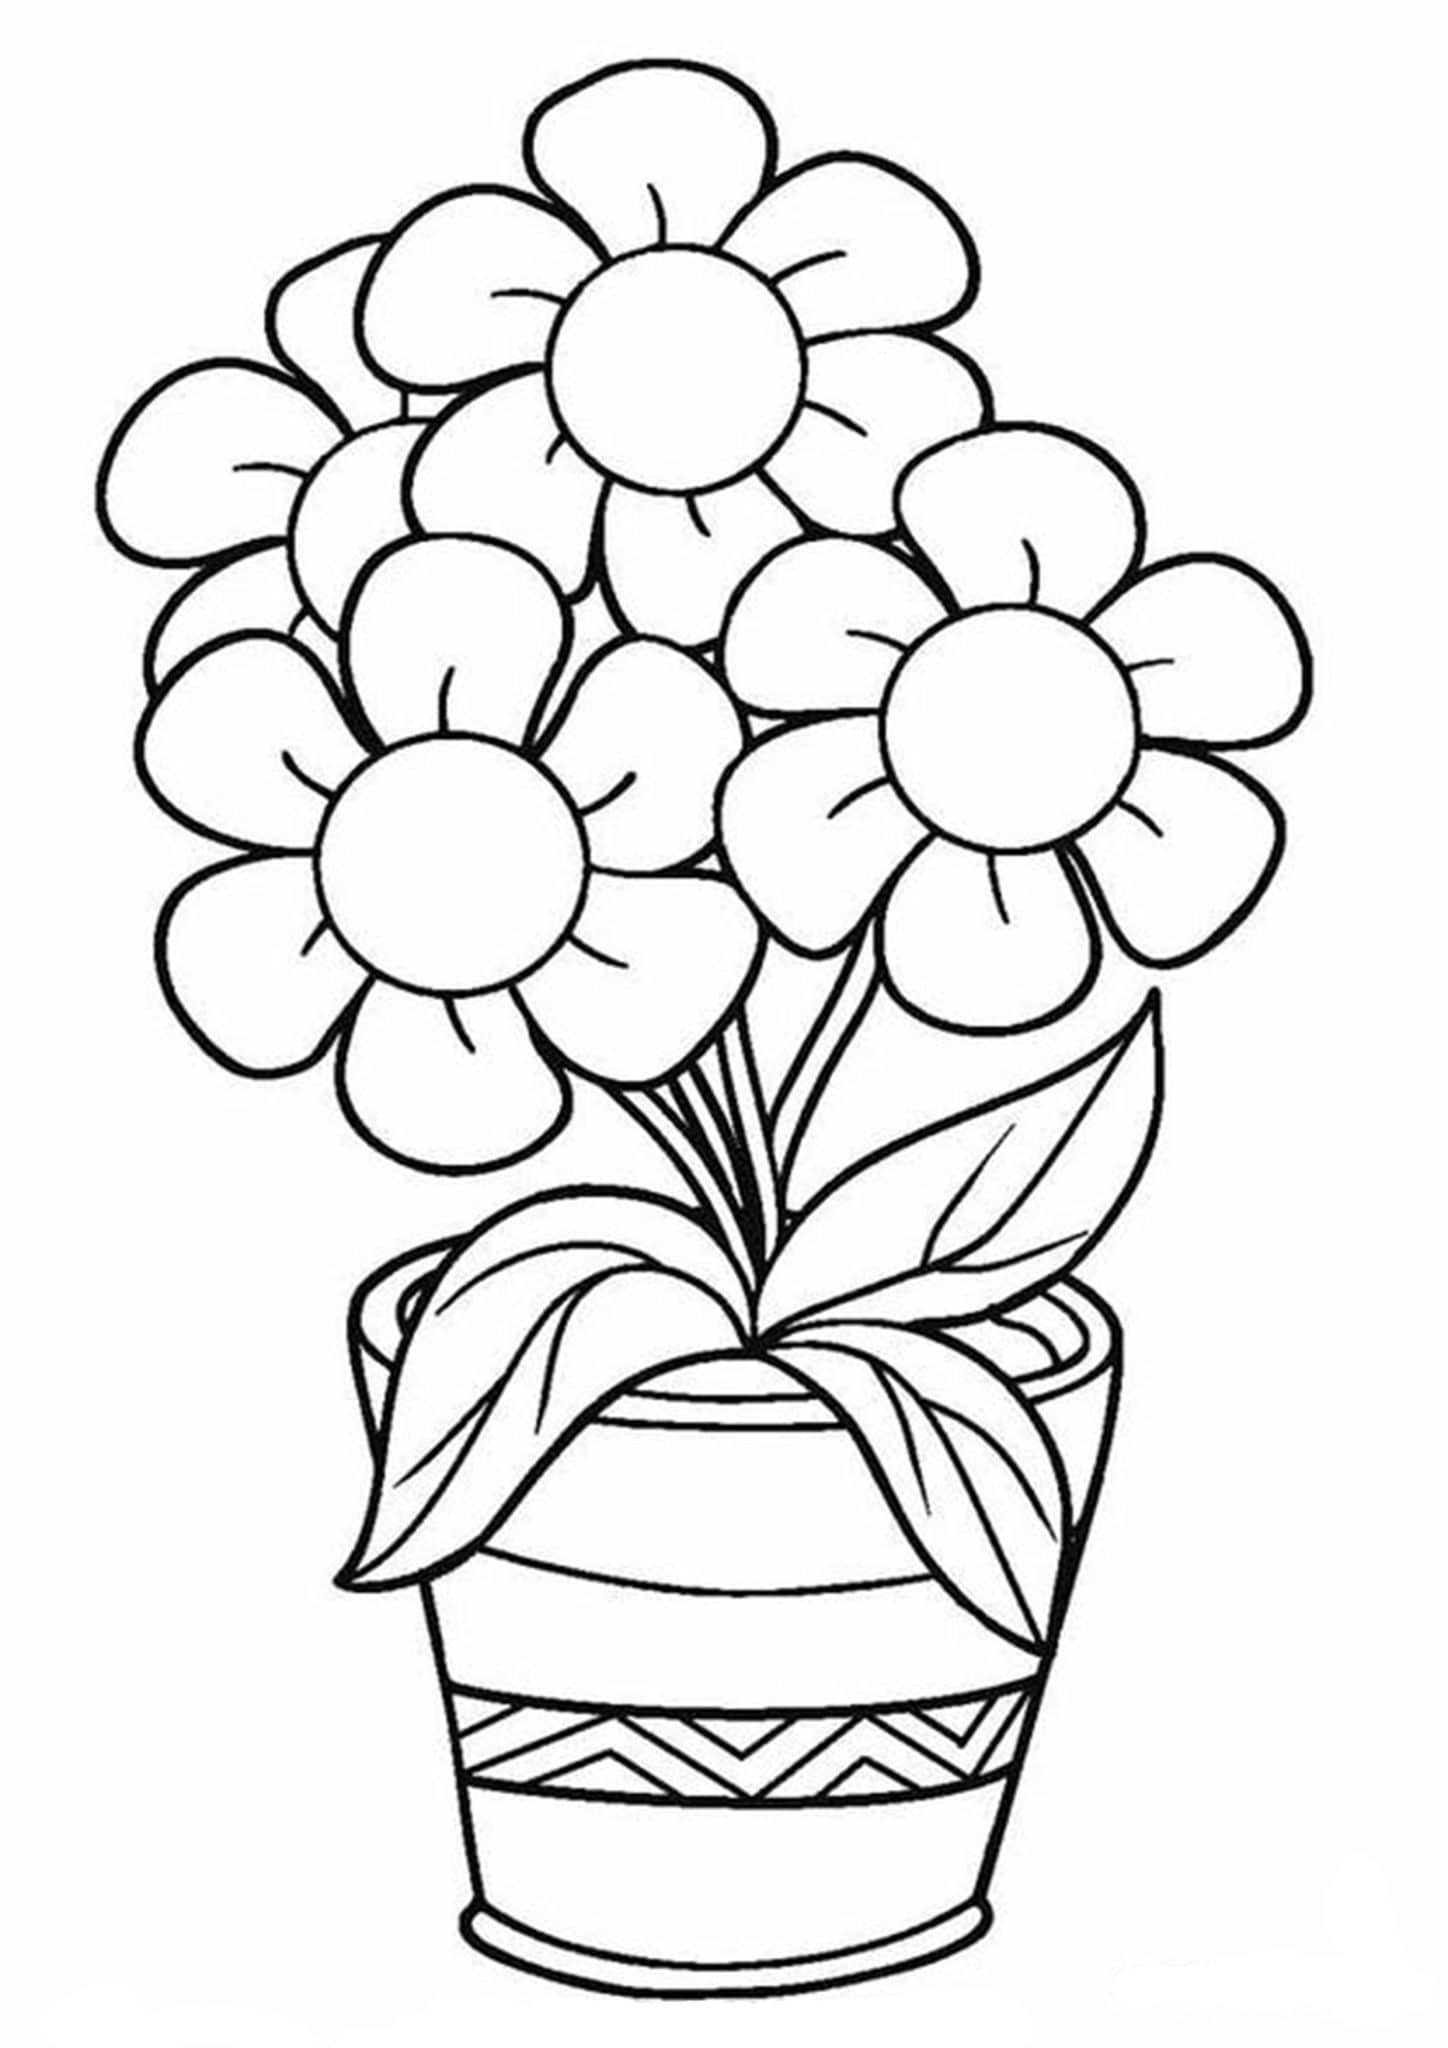 free printable coloring pages of flowers free printable flower coloring pages for kids best flowers coloring pages of printable free